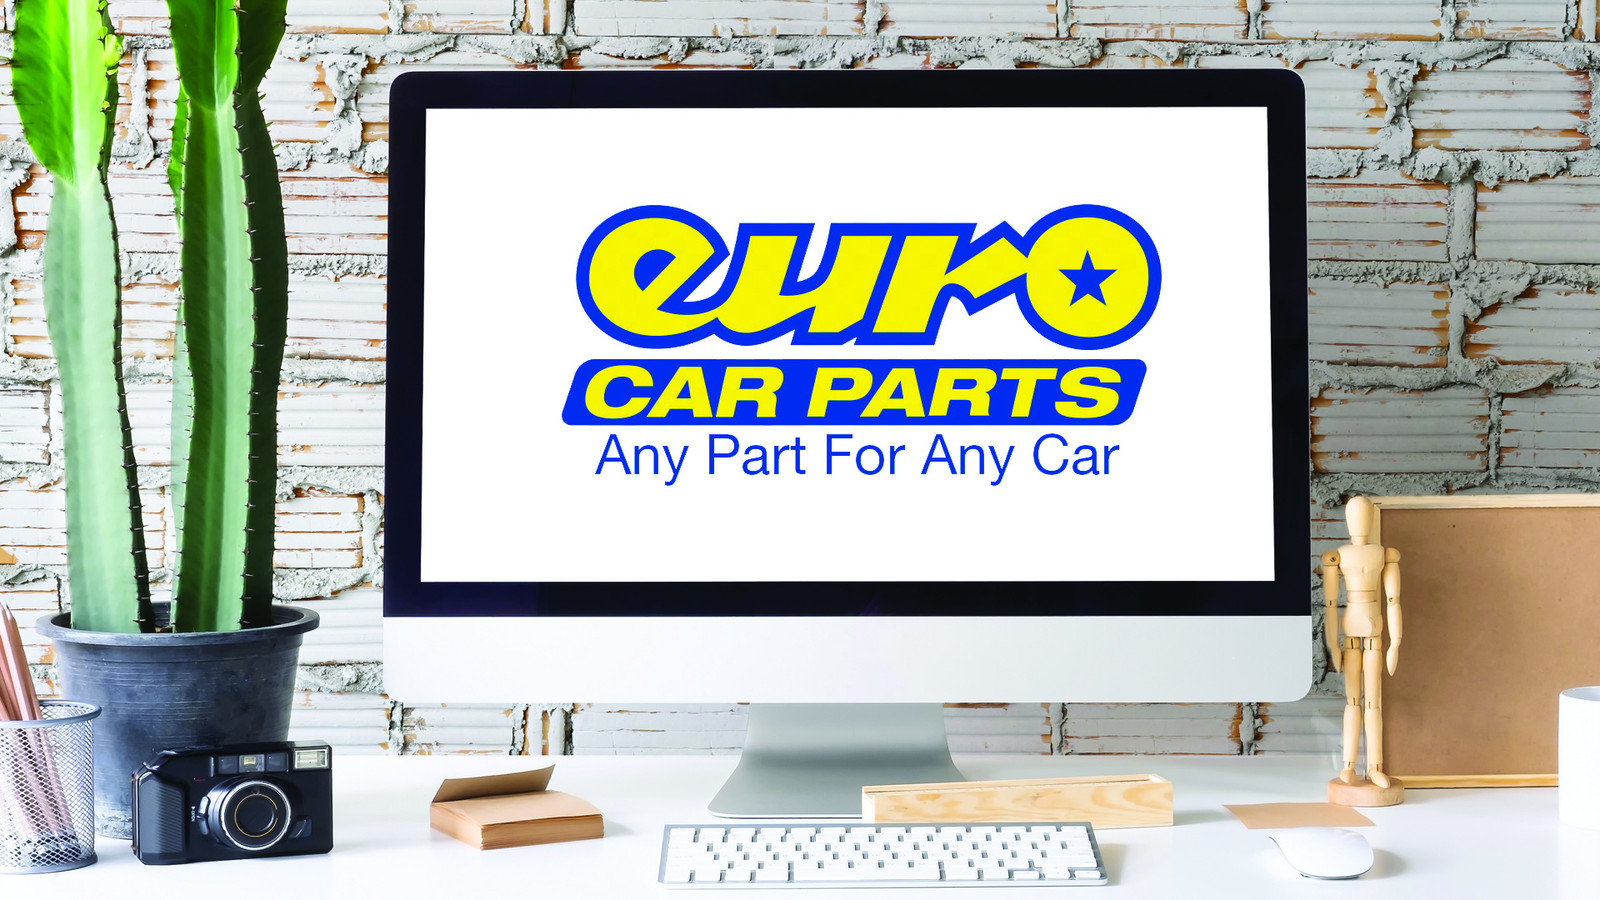 Euro Car Parts Seo Pr Campaigns Native French Digital Marketing